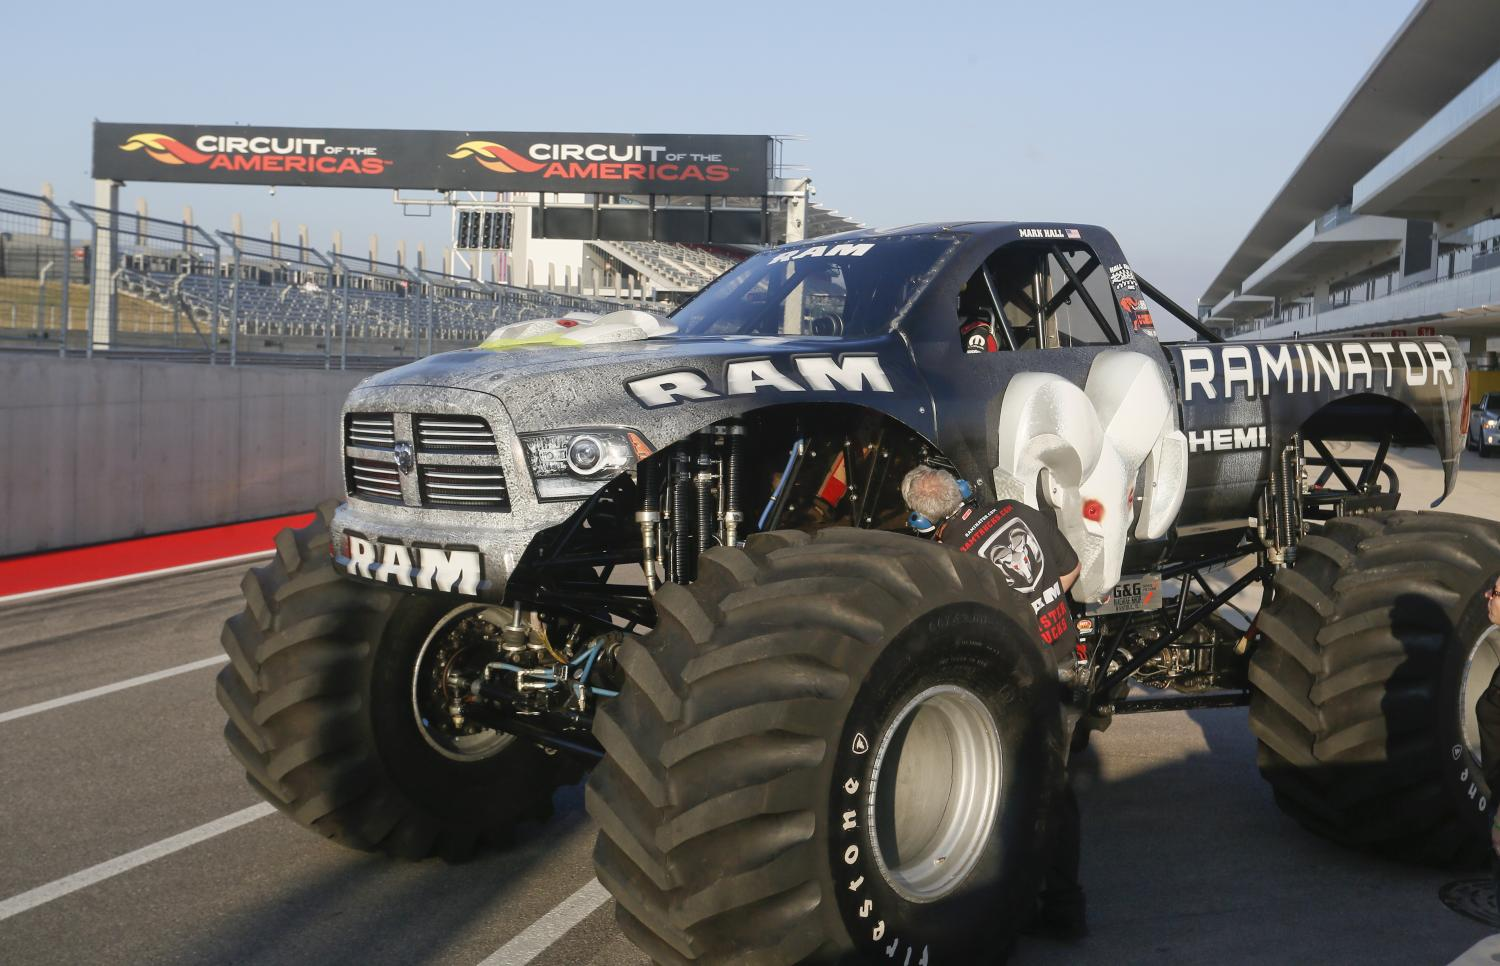 fastest monster truck in the world record goes to the raminator of hall brothers racing